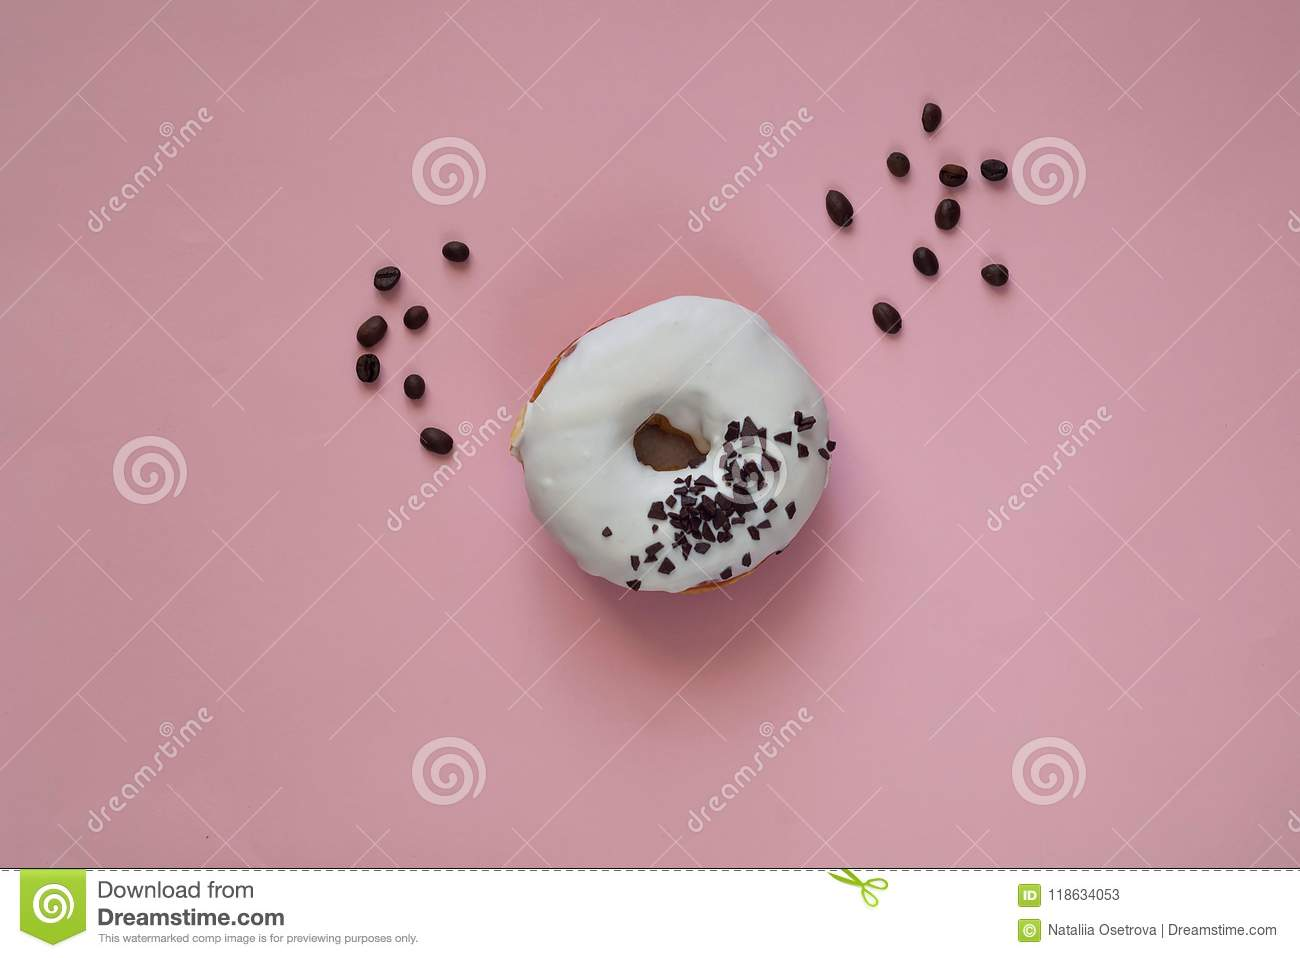 White glazed donut with black chocolate sweets on pink background.Flat lay. Food concept,colorful breakfast. Macro